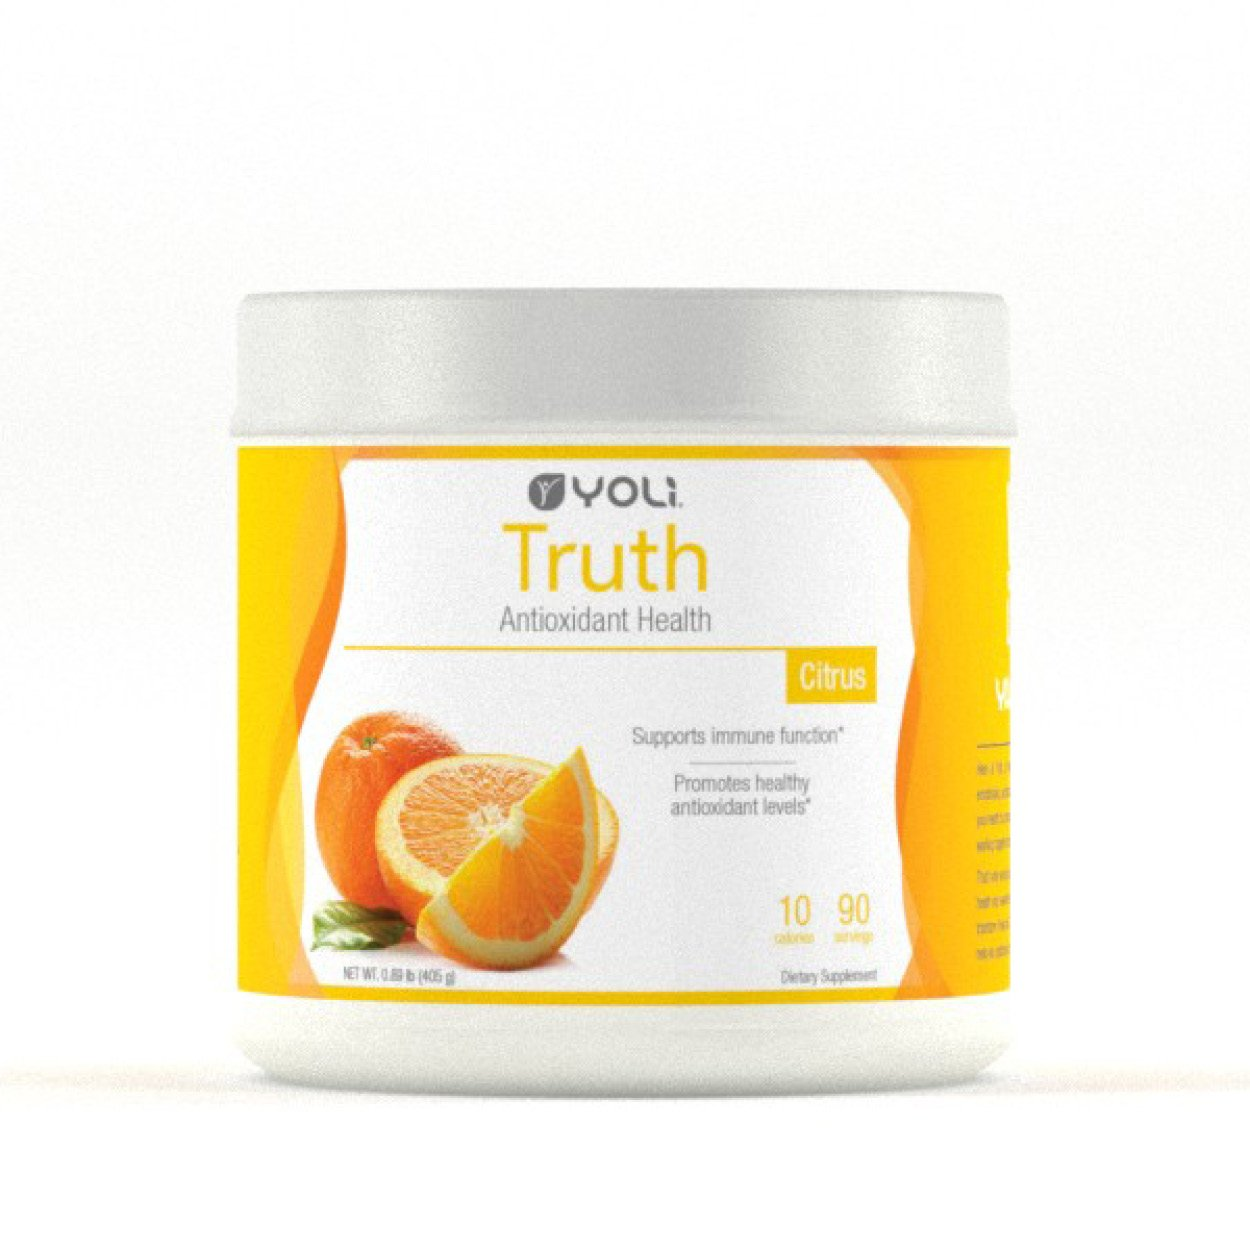 Yoli Truth - Delicious Drink Mix That Promotse Healthy Antioxidant Levels - Sugar Free (Canister - 90 Servings)